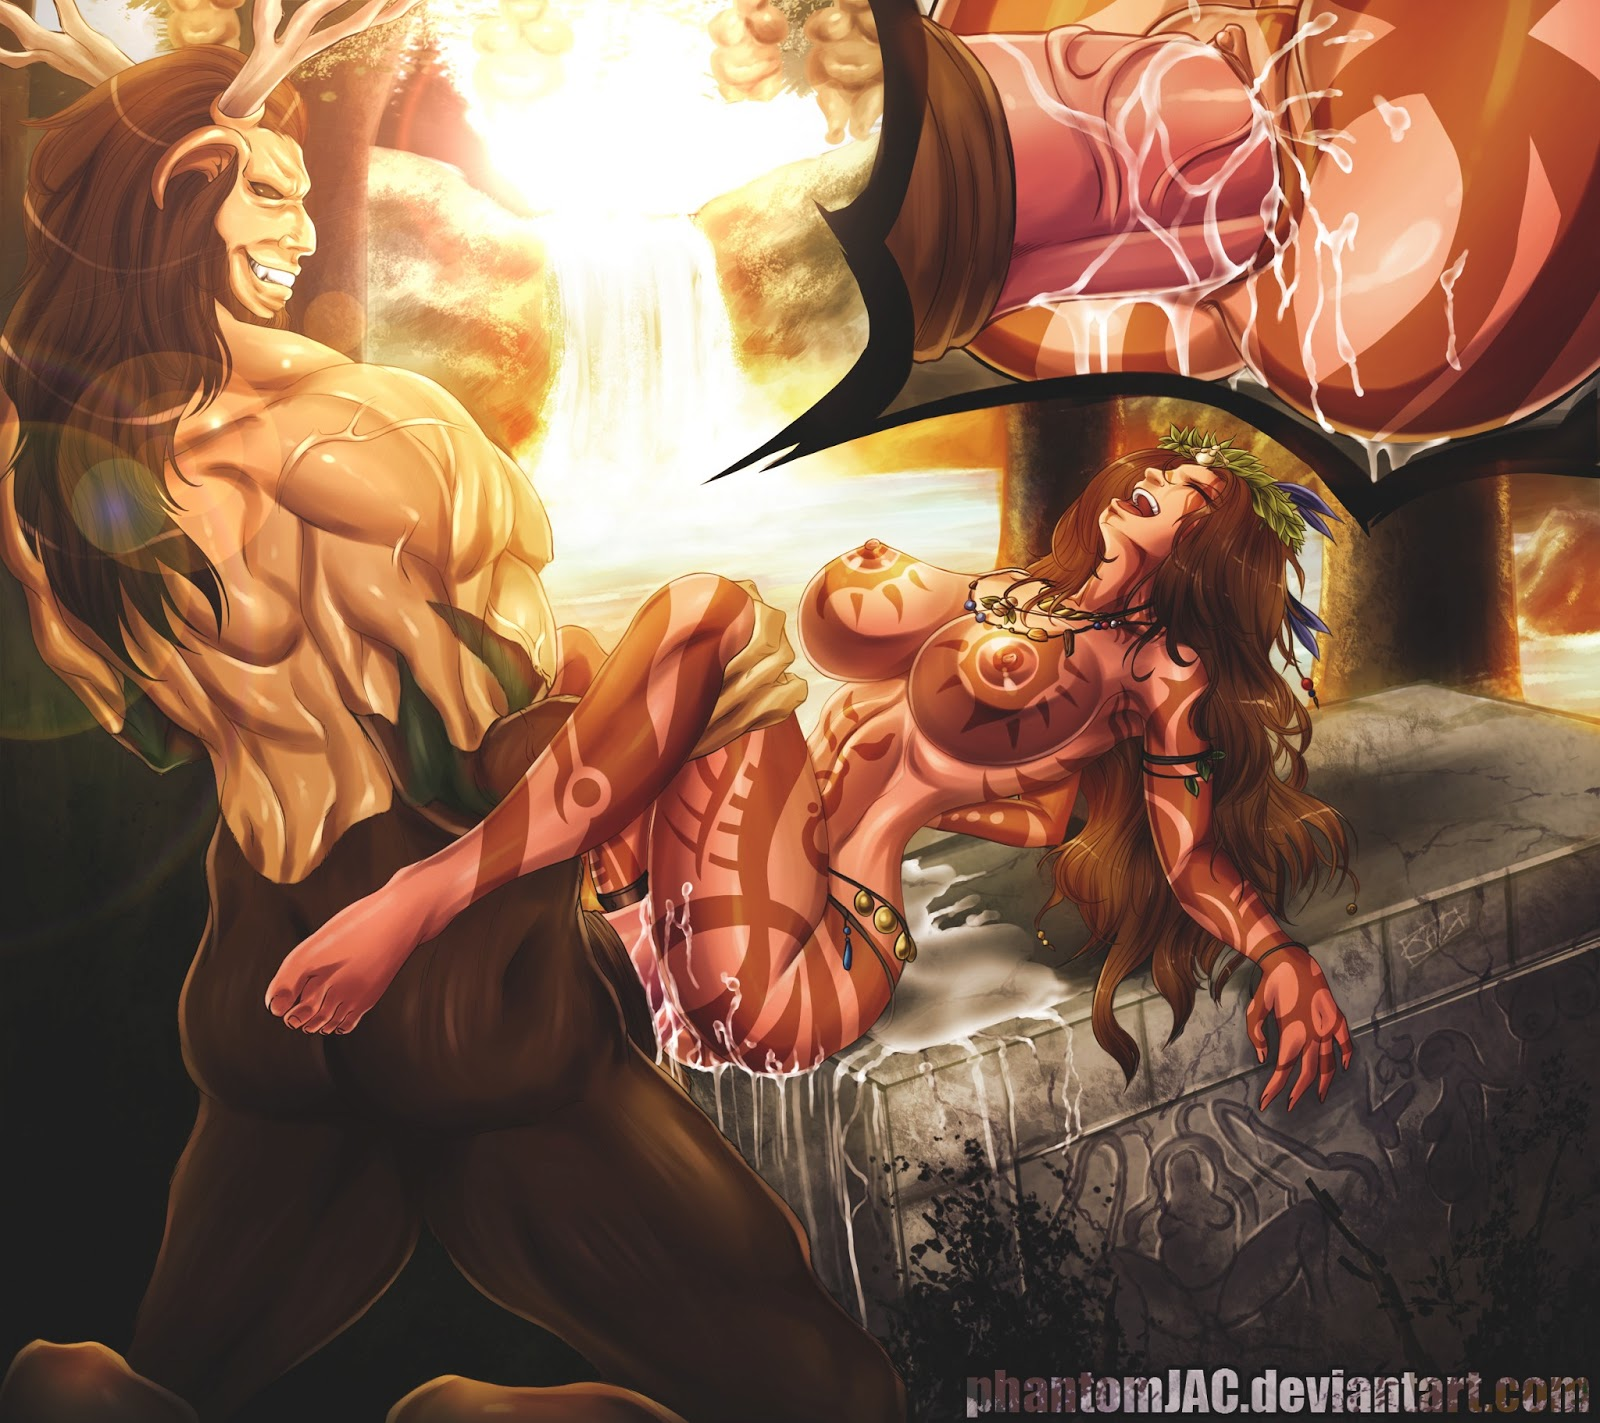 Hentai satyr grils with human males hardcore gallery